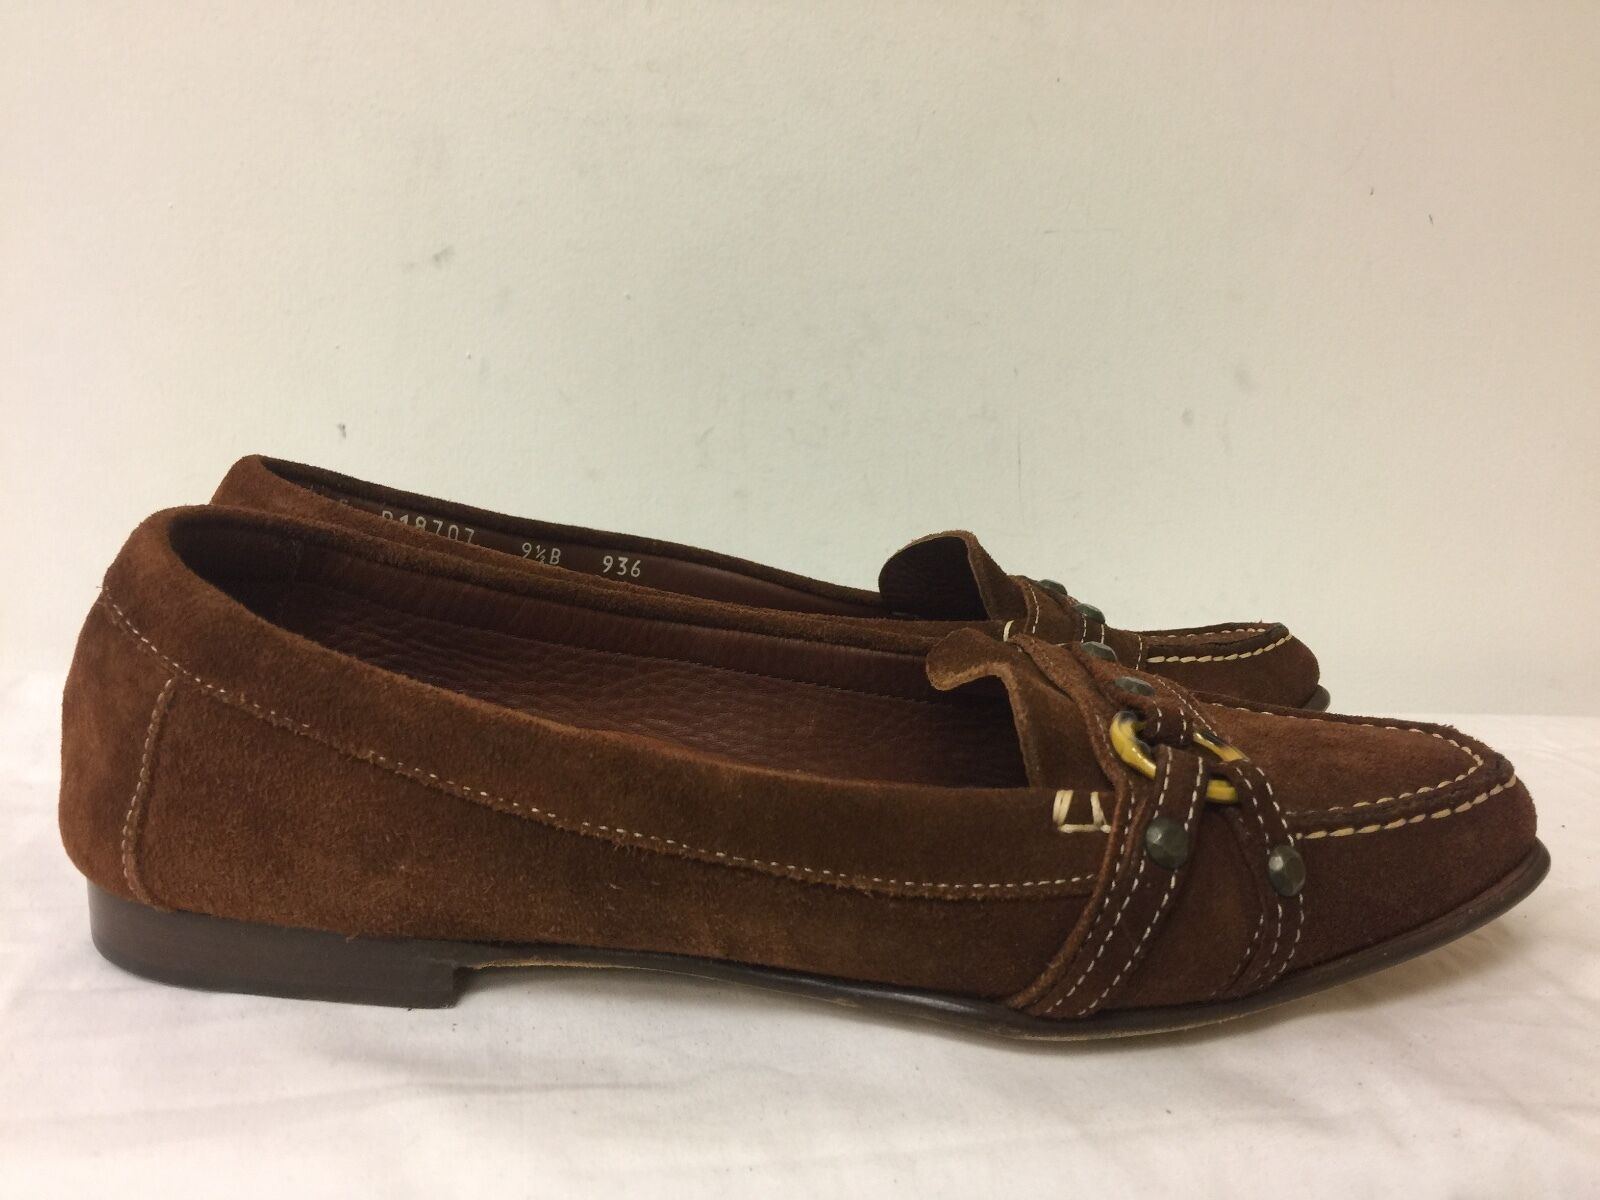 COLE HAAN  Donna LEATHER SUEDE BROWN 9.5B MOCCASINS  SHOES SIZE 9.5B BROWN b95beb